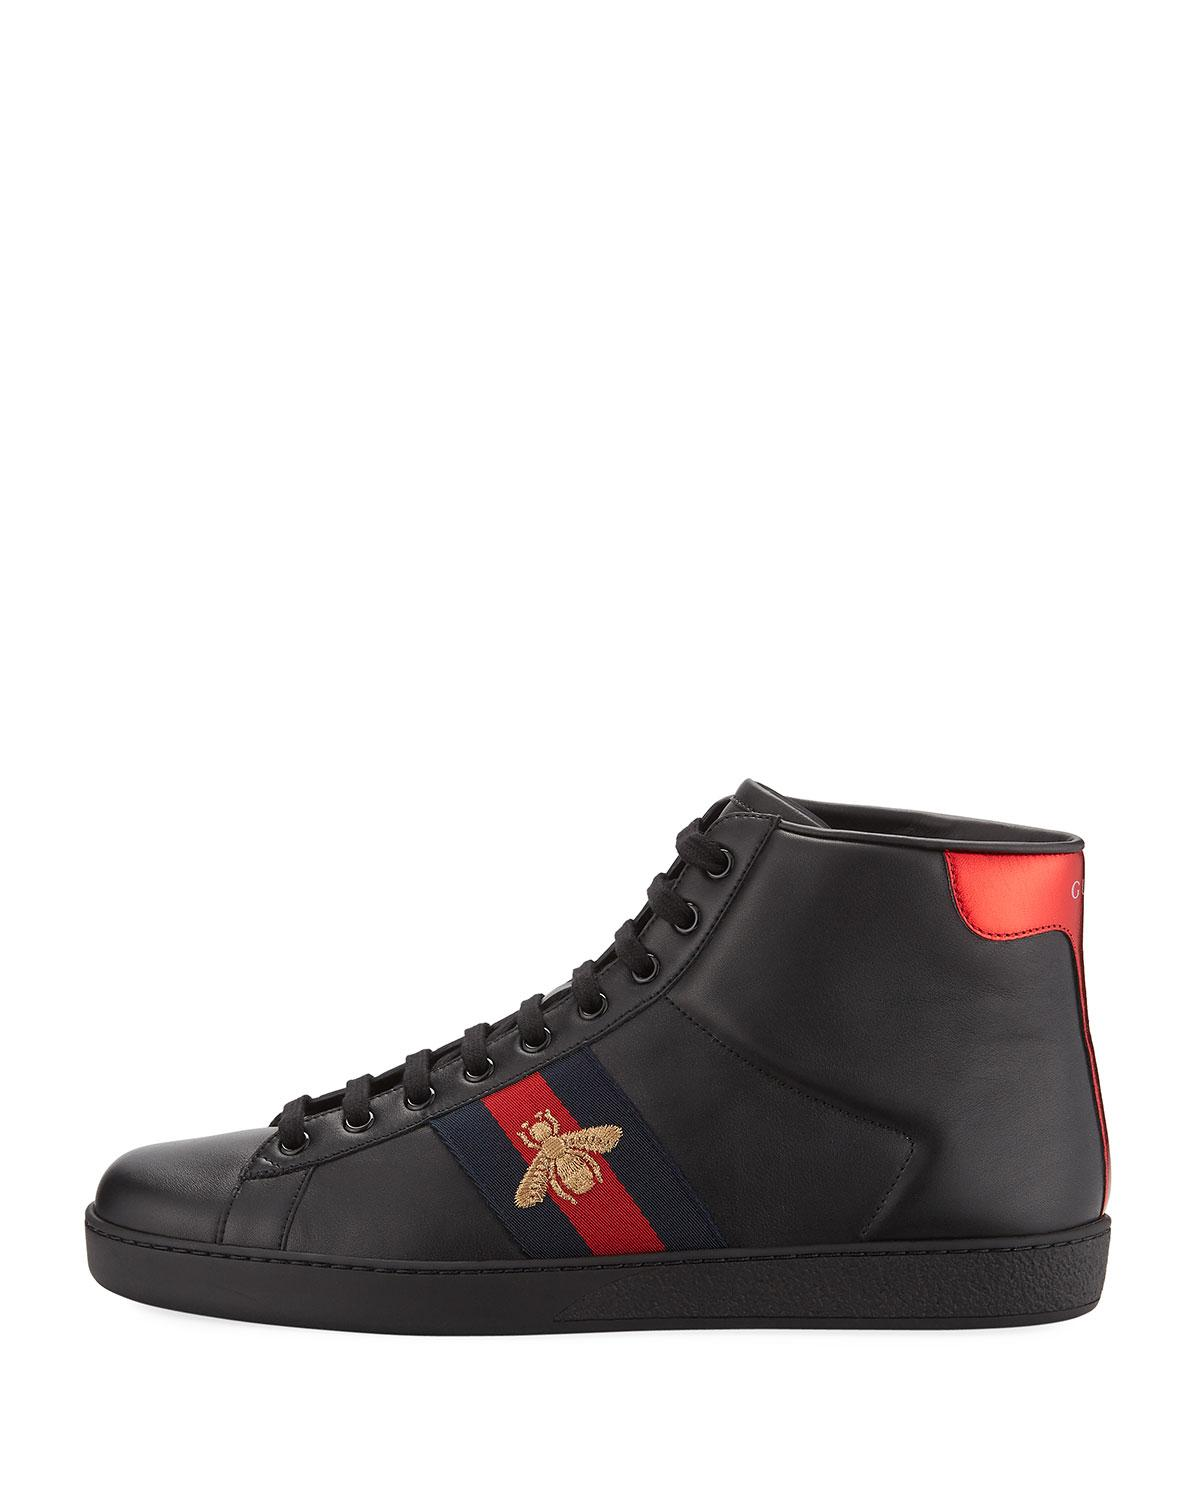 Ace bee-embroidered high-top leather trainers Gucci lNENjfO5G